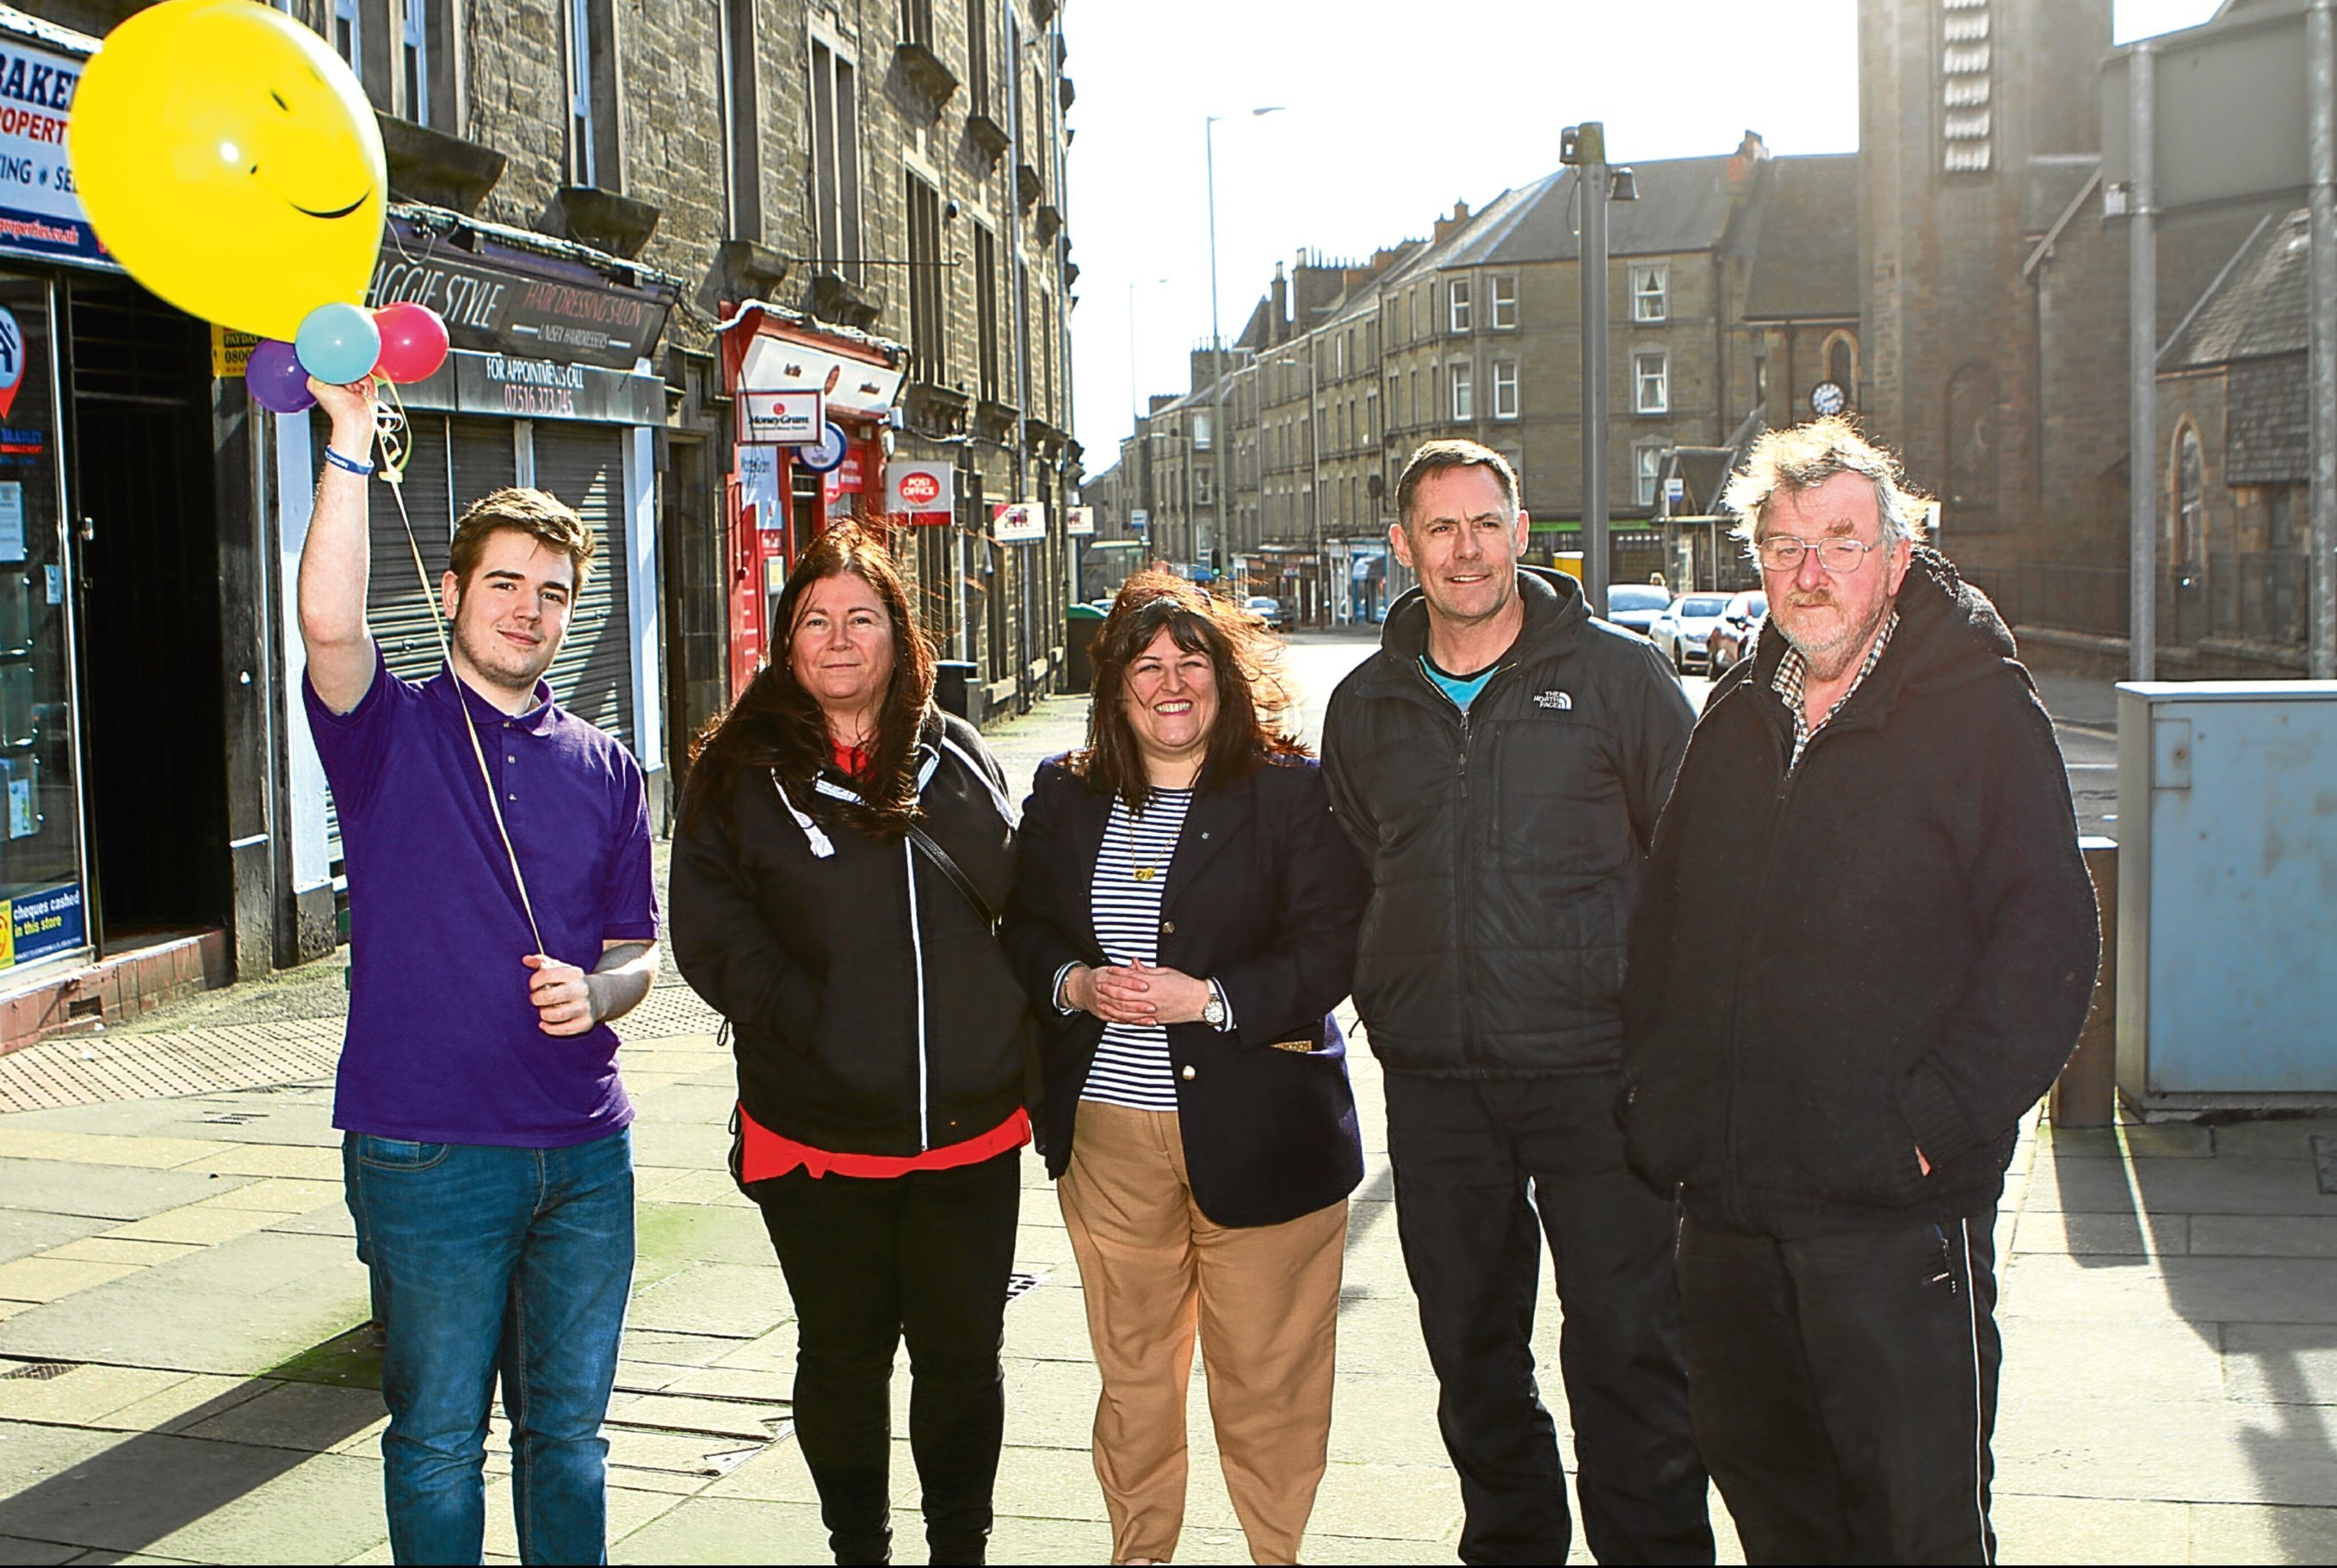 At the top of Albert Street are local traders Cameron (Balloons Made For You), Lyndsey Bertie (Bertie's Barber), Cllr Lynne Short, Colin Murray (Nicholsons Cycles) and Allan Gourlay (Brand's Books)